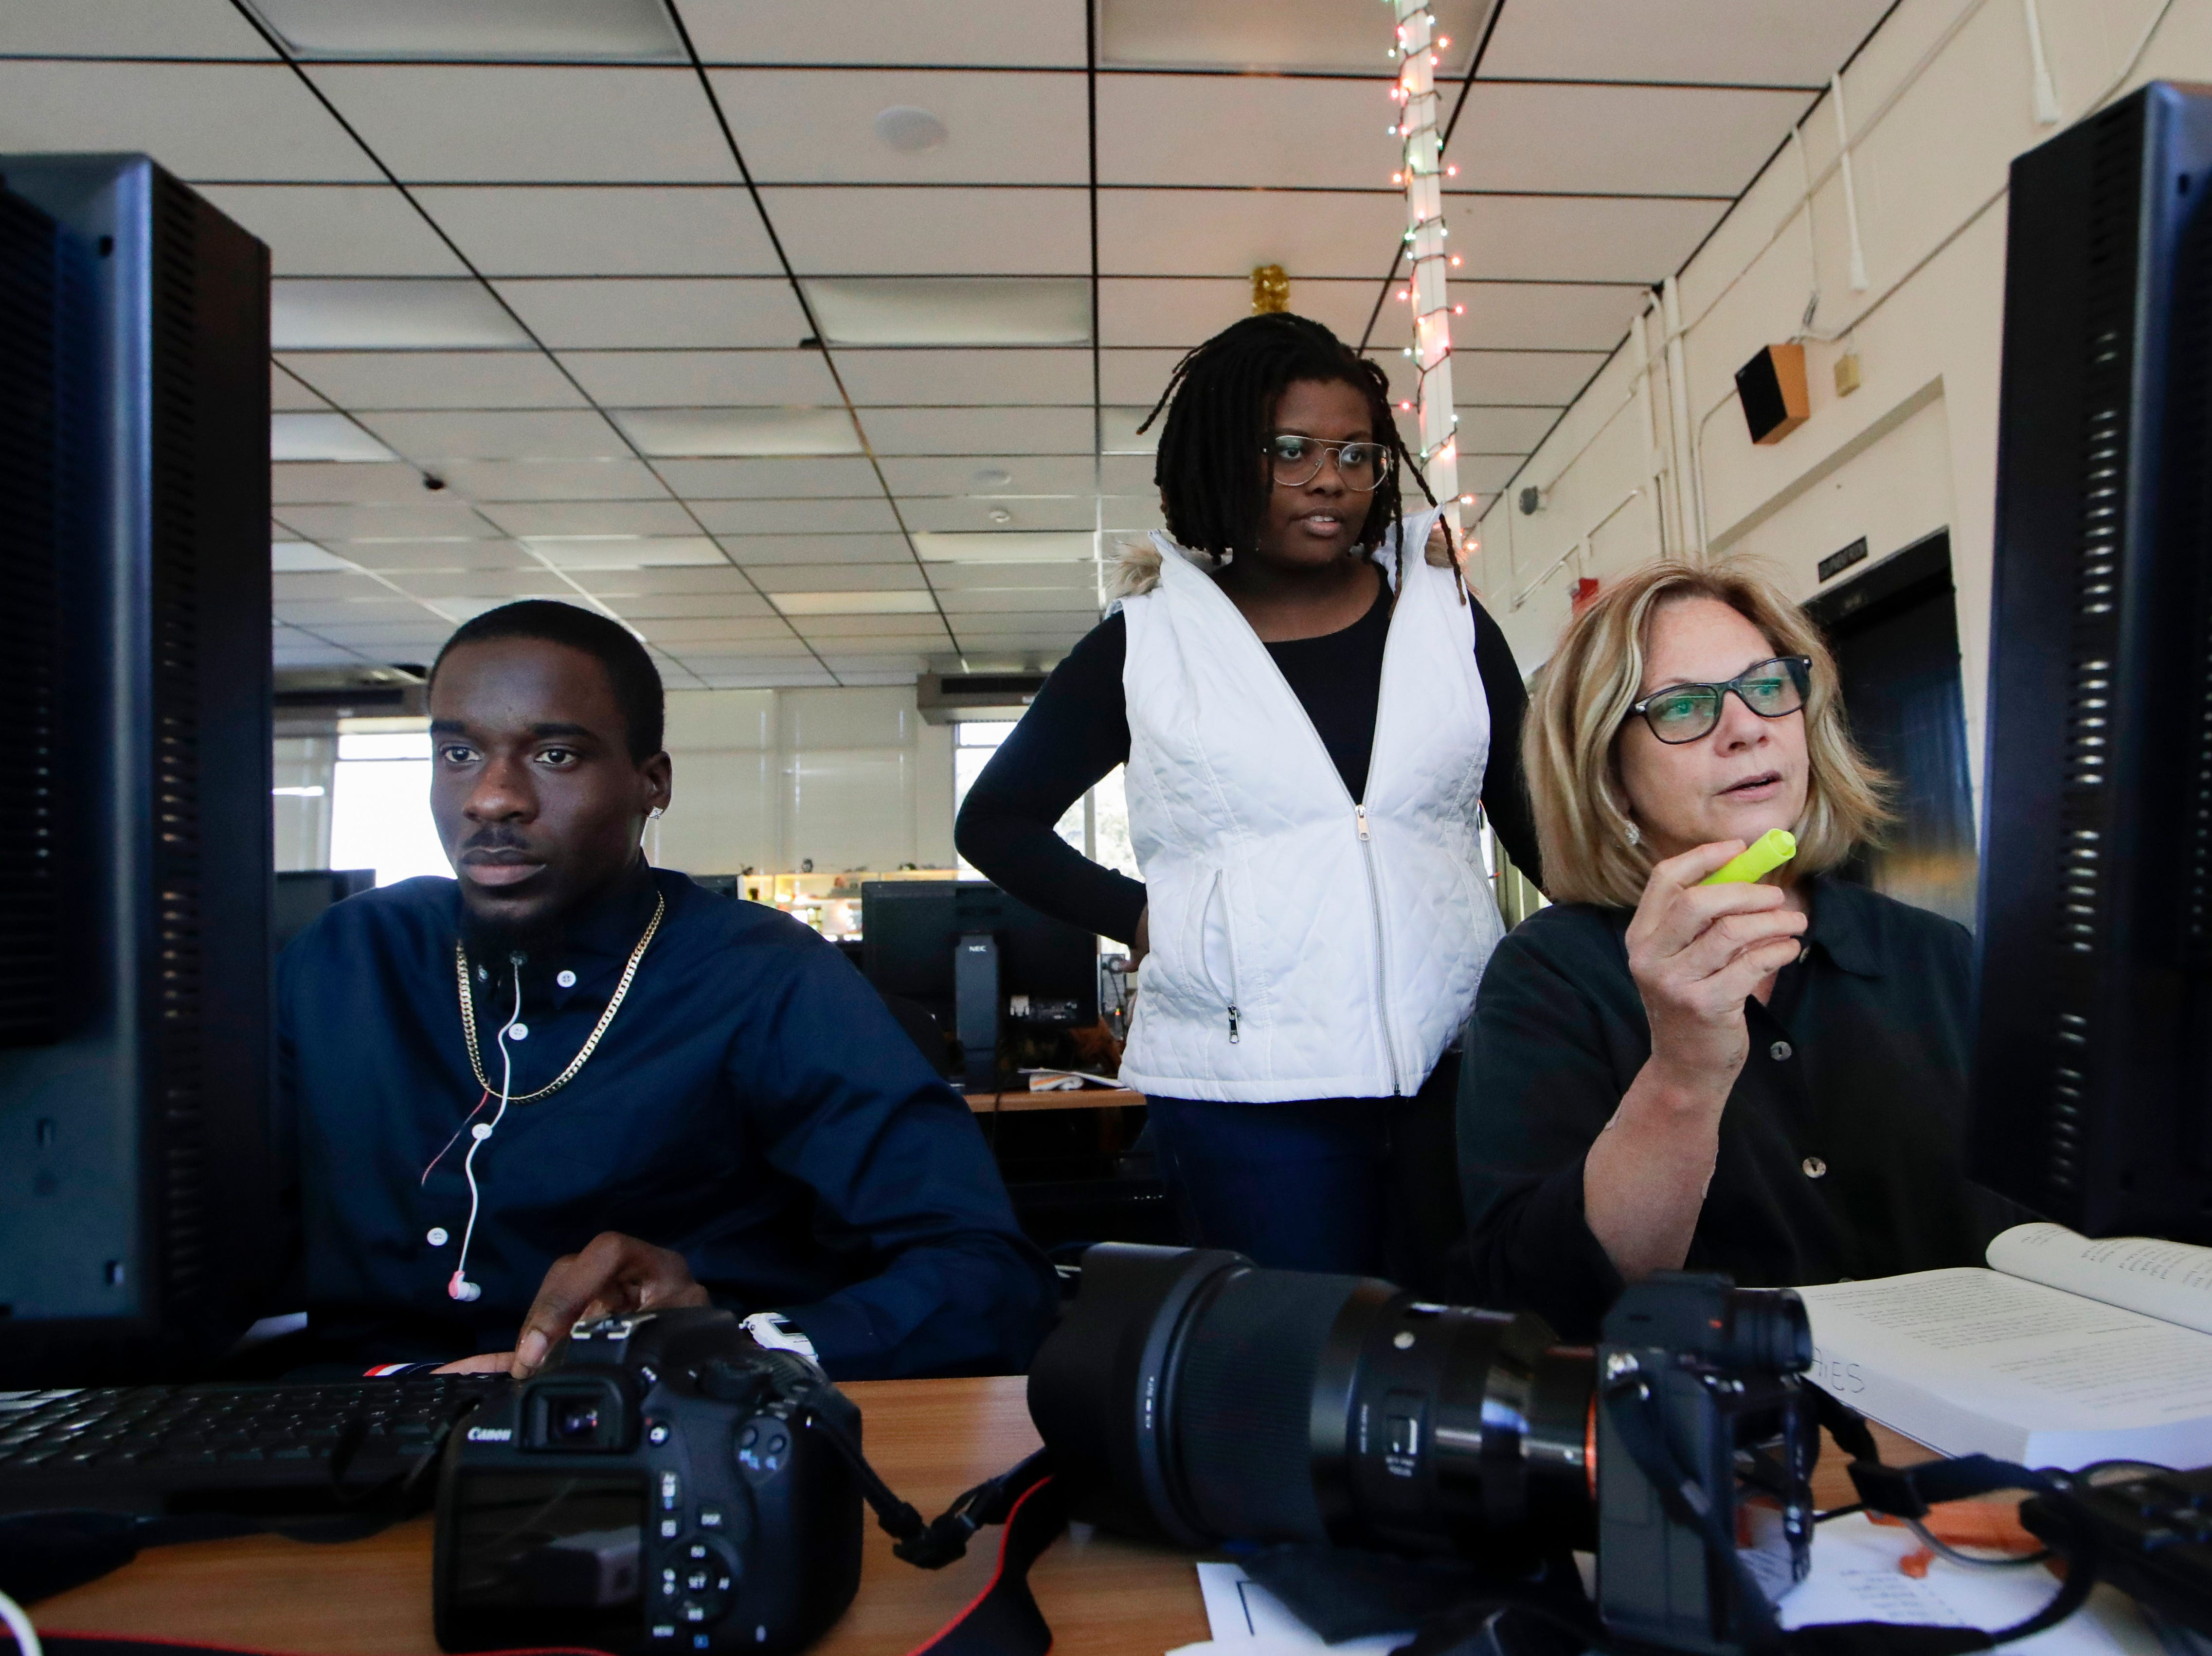 Photography students Shuntel Murray, Joi Berry and Mijnon Deshaies Wednesday, Jan. 9, 2019 at Lively Technical Center which has been approved by the Leon County School Board to change it's name to Lively Technical College.